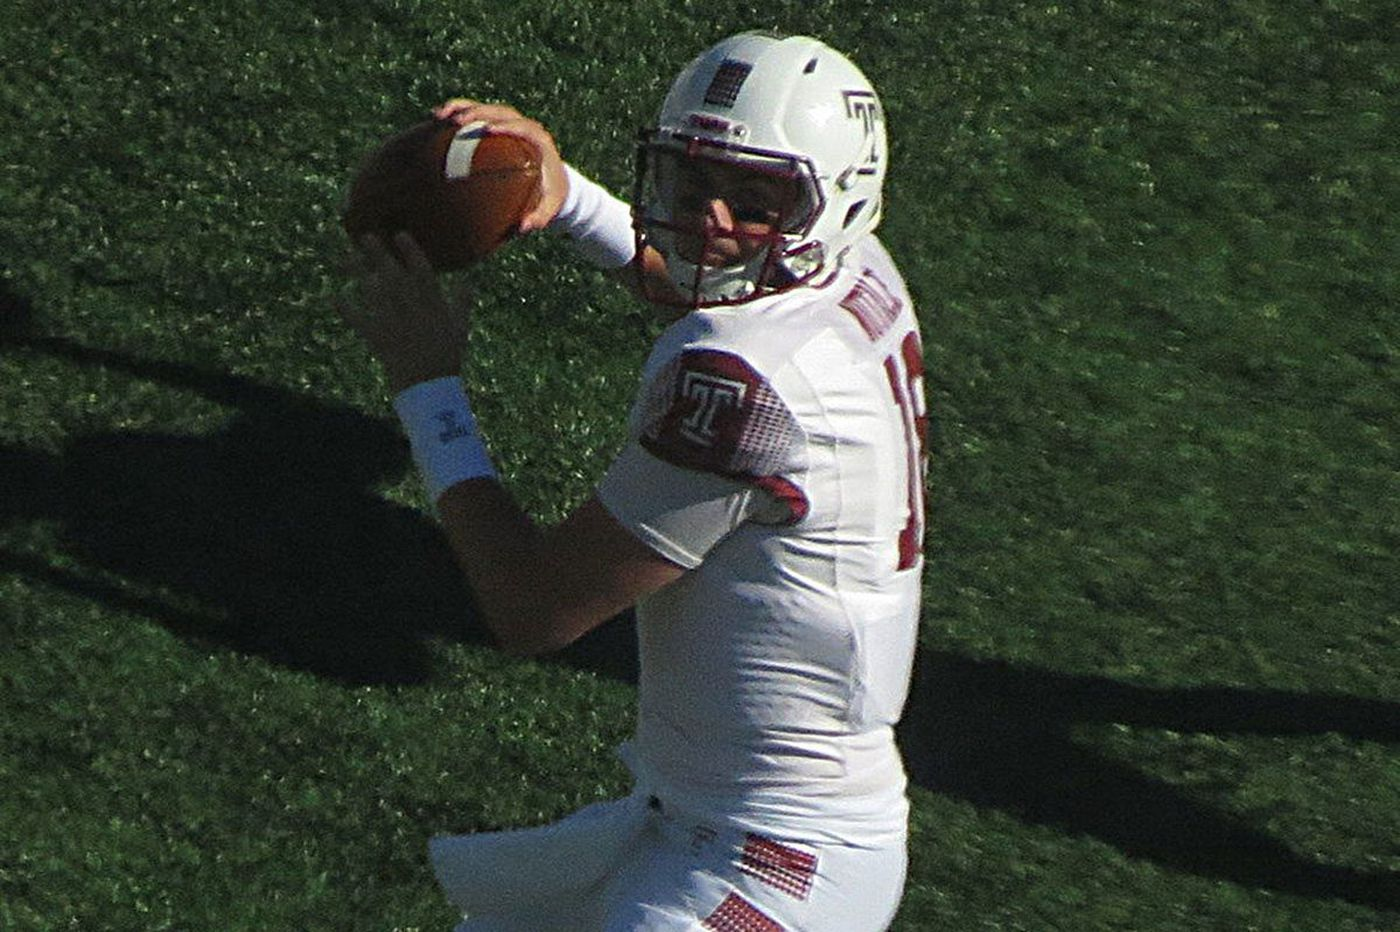 Temple QB Frank Nutile stays the same, whether he's starting or not